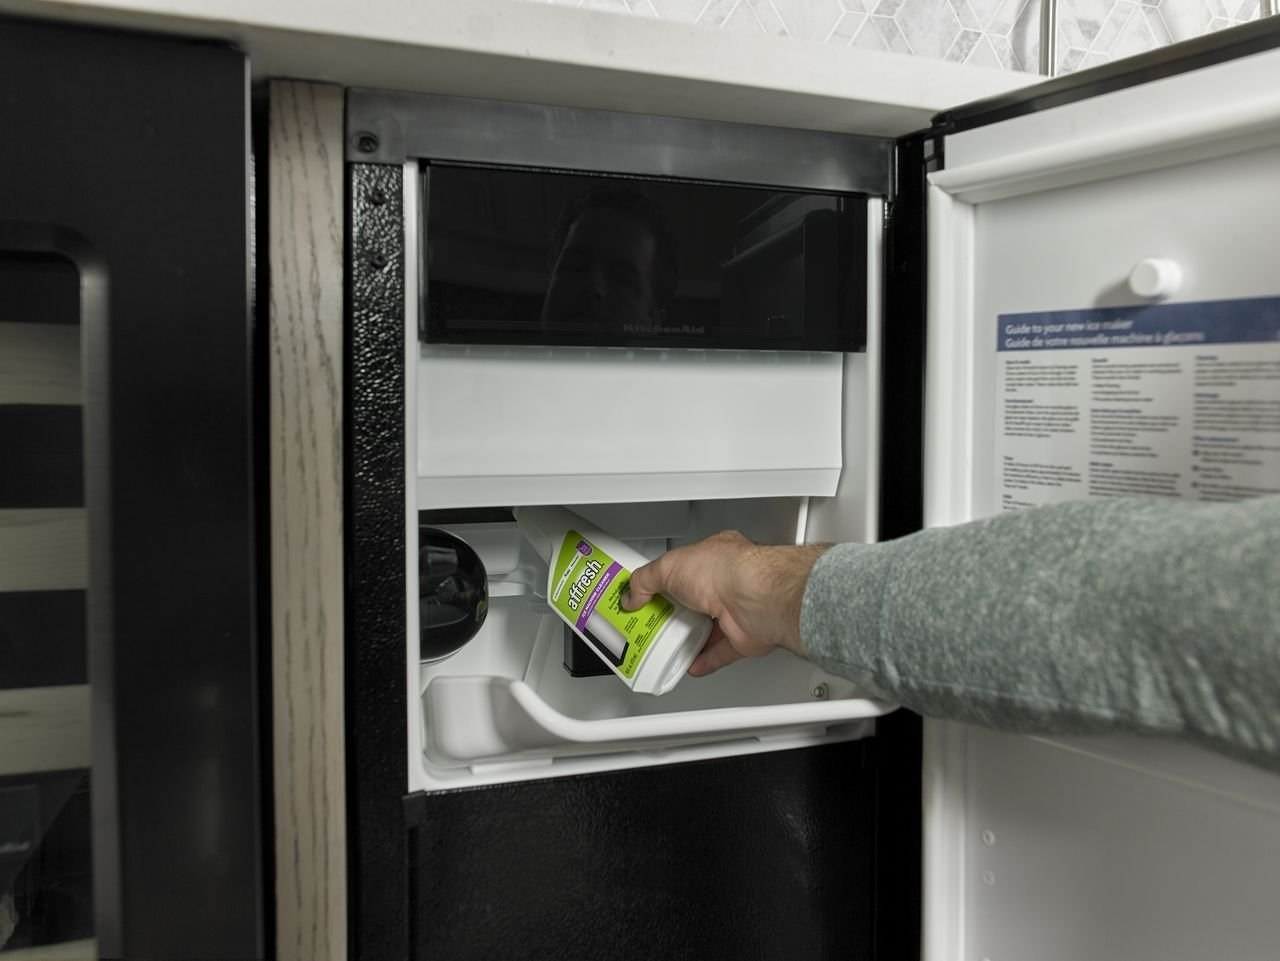 The ice machine cleaner in use